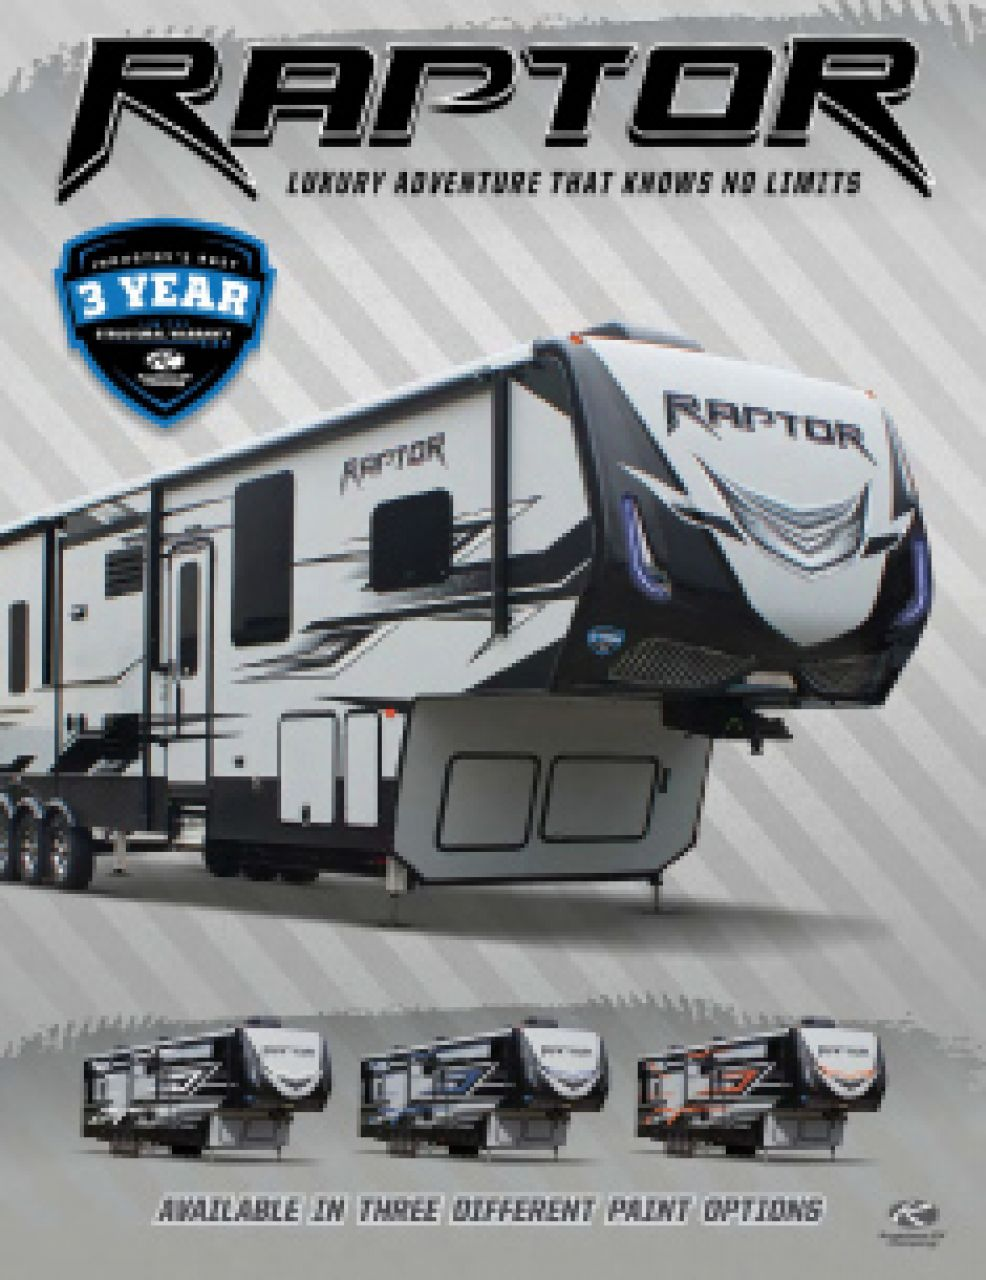 raptor-2019-broch-nationalrv-pdf